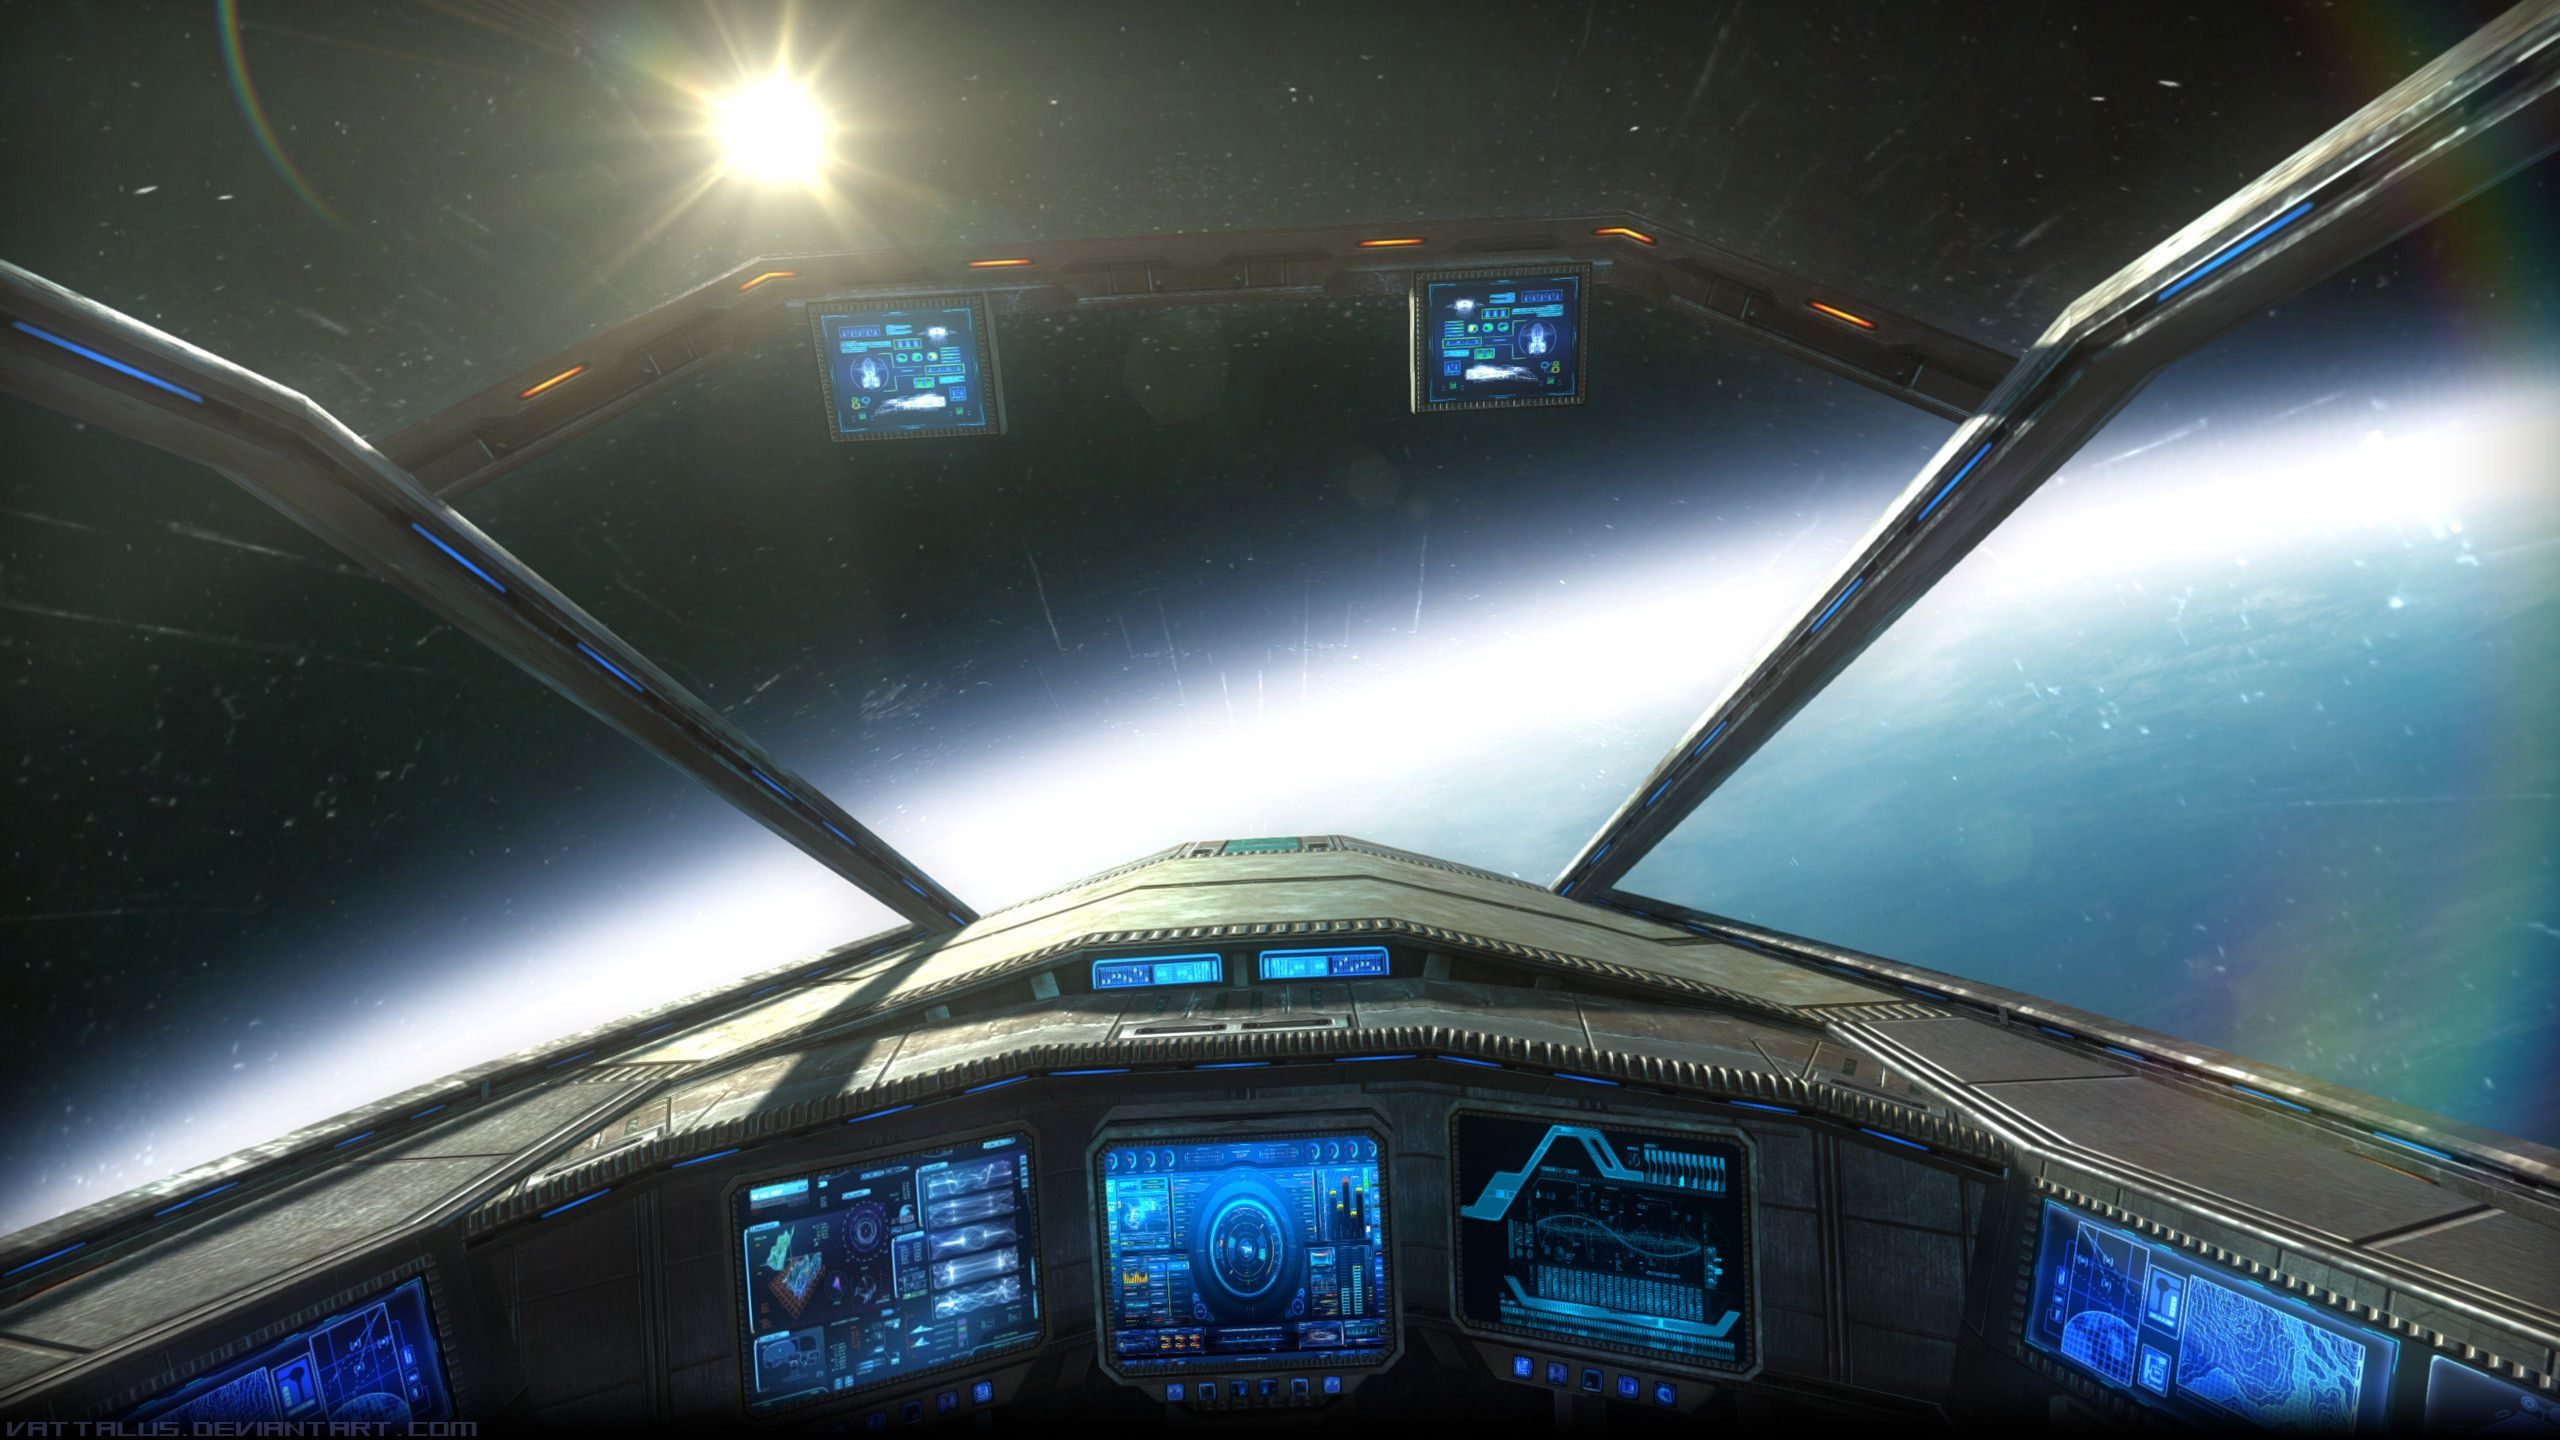 Pin By Sarah Griffen Lotz On Wallpaper Star Citizen Cockpit Space Fighter